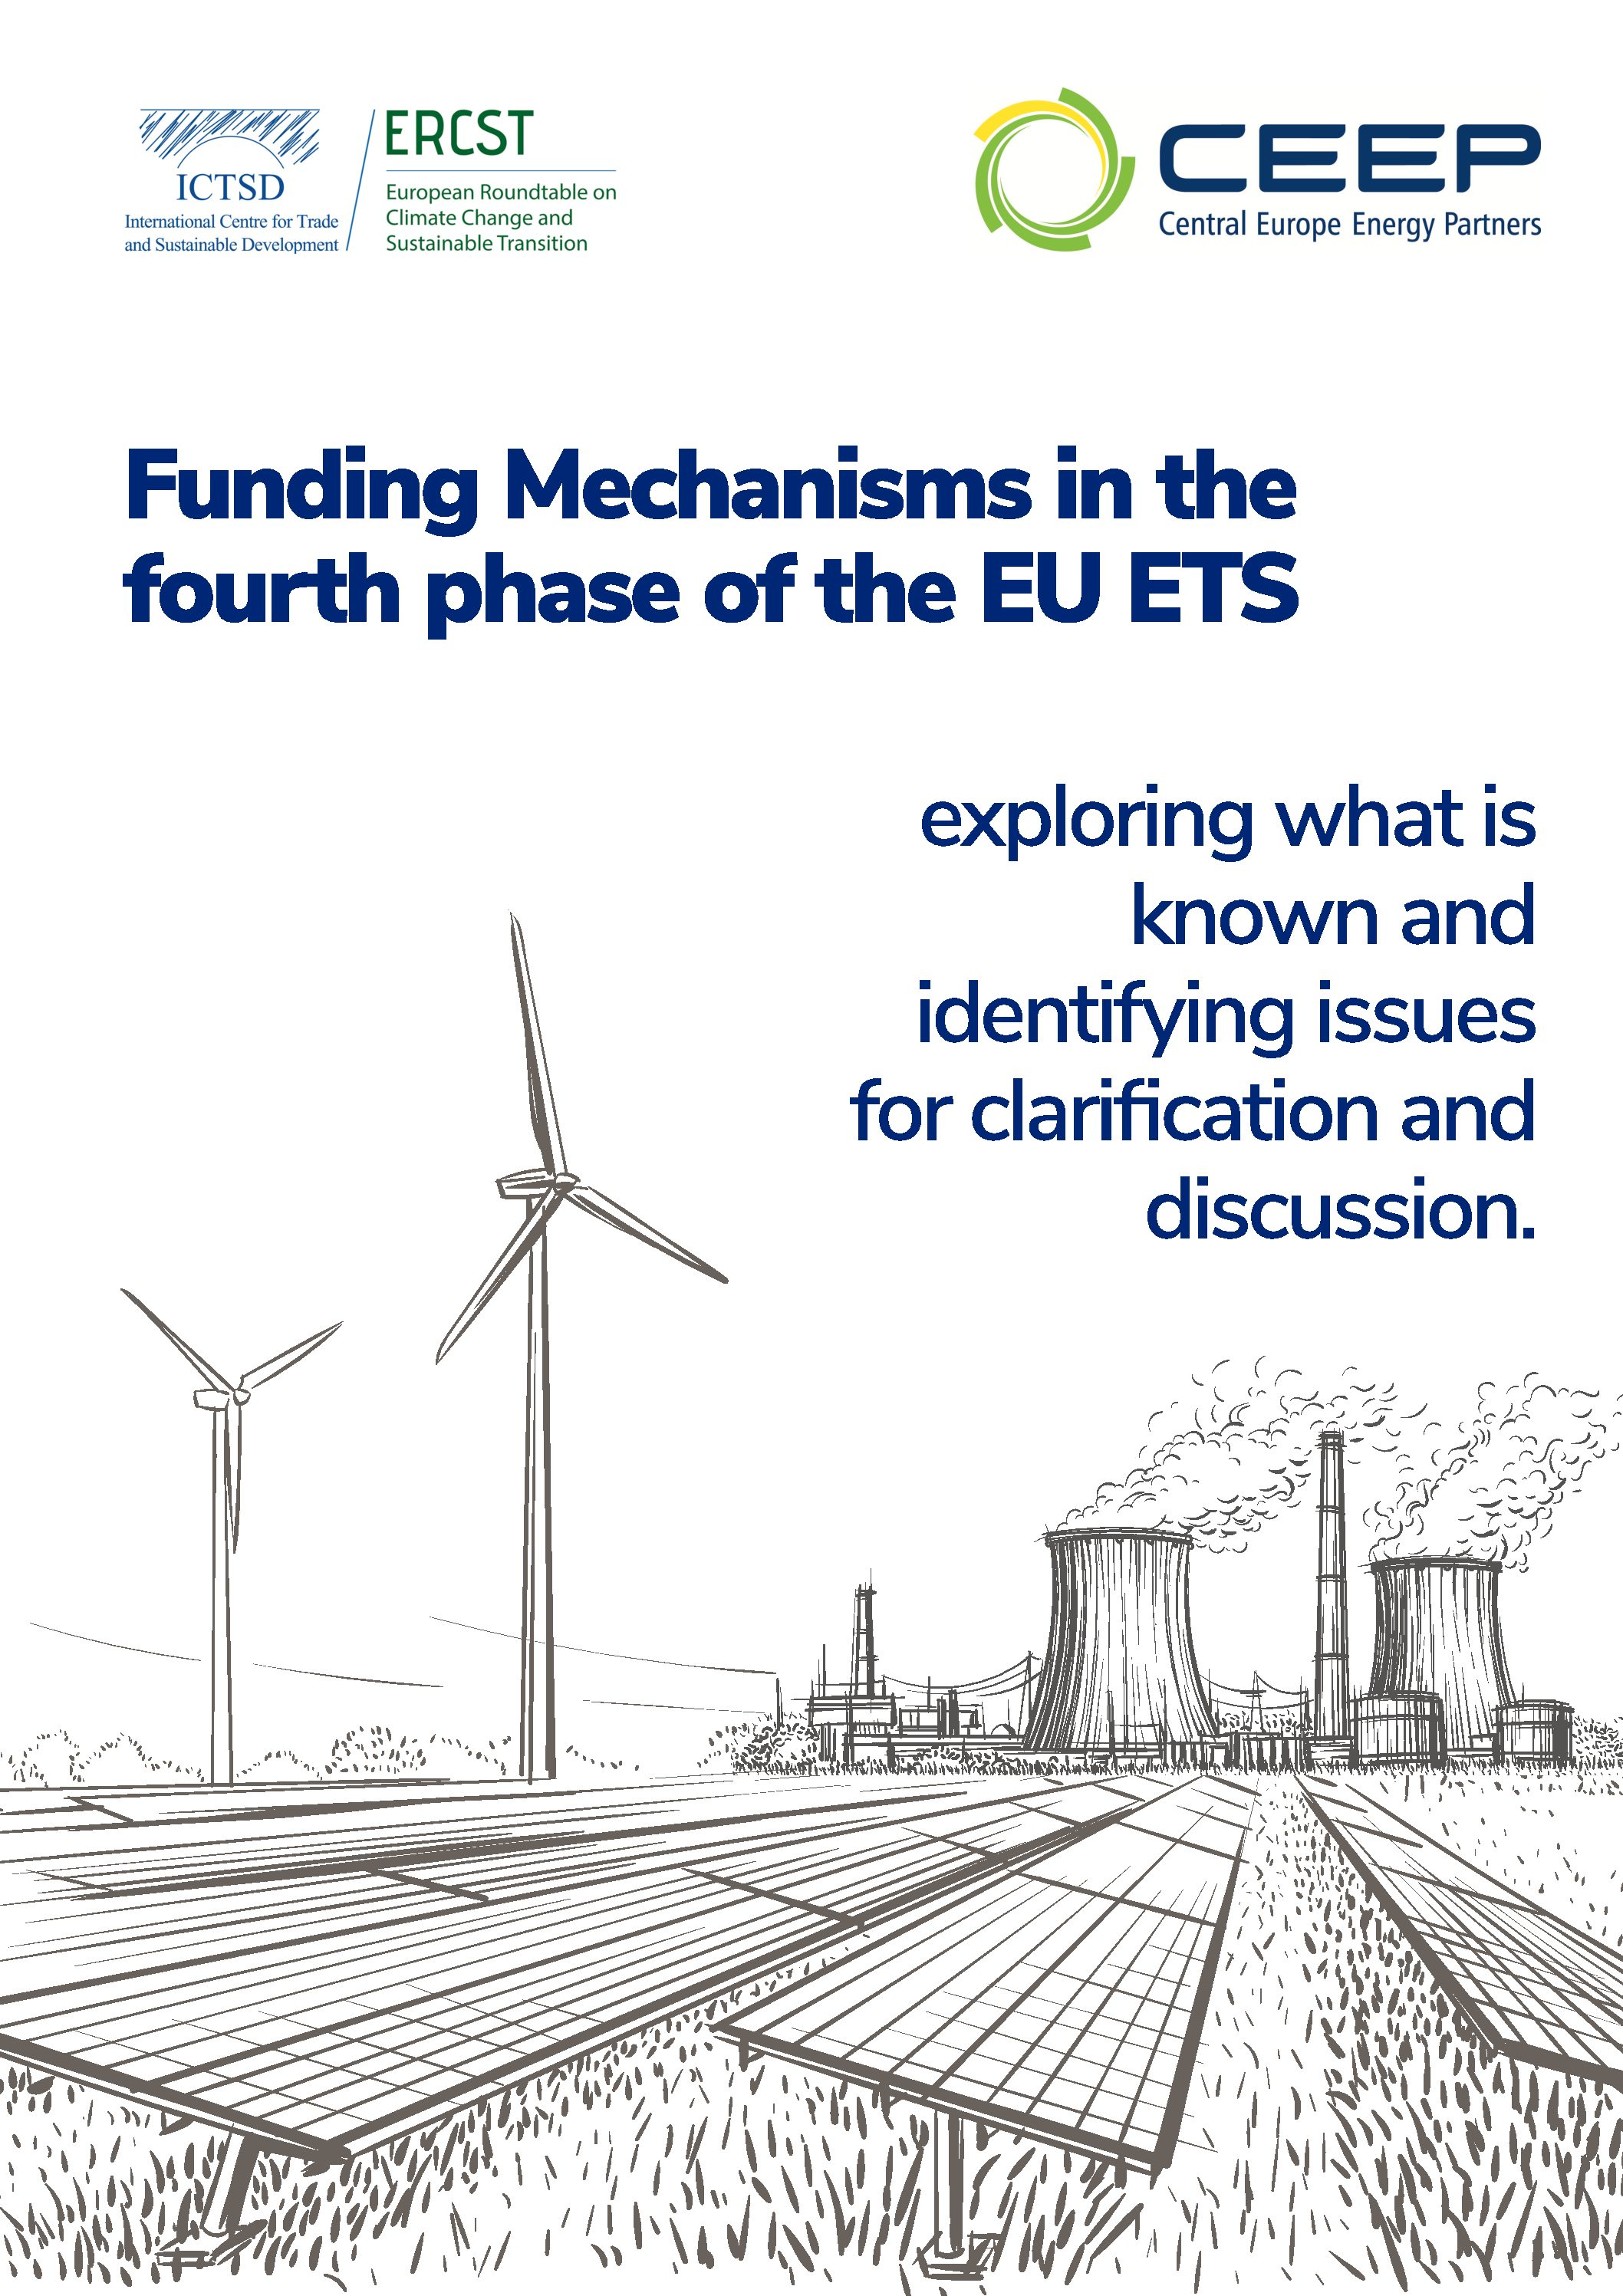 REPORT: Funding Mechanisms in the fourth phase of the EU ETS, exploring what is known and identifying issues for clarification and discussion